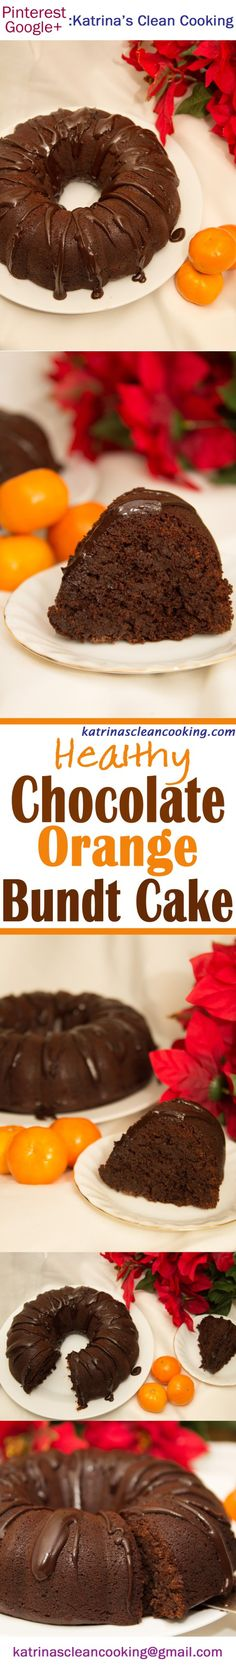 Healthy Chocolate Orange Bundt cake: refined-sugar-free, can be gluten-free & dairy-free, contains no butter/oil! Soft, chocolaty and fudgy, easy to bake! Chocolate Orange, Healthy Chocolate, Clean Eating Recipes, Healthy Recipes, Orange Bundt Cake, Pound Cake Recipes, Epiphany, Low Sugar, Glutenfree